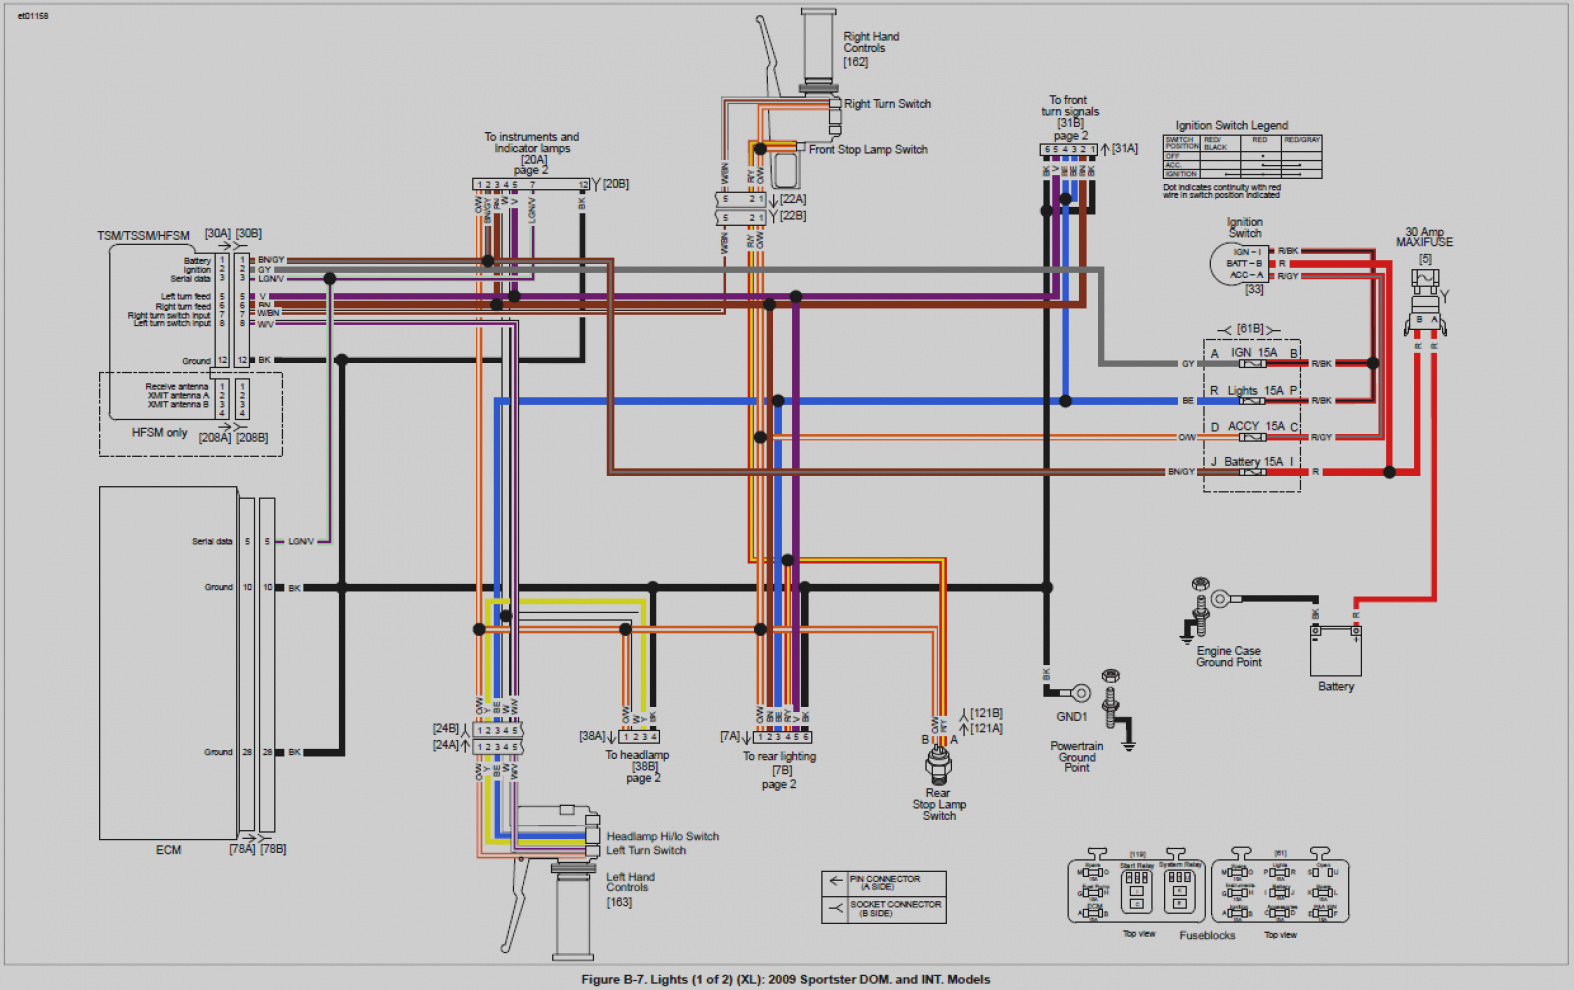 Badlands Turn Signal Wiring Diagram Harley. Simple Turn Signal ... on badlands electronics wiring-diagram, simple turn signal diagram, 2009 sportster wiring diagram, 1974 vw beetle wiring diagram, badlands load equalizer wiring-diagram, harley sportster wiring diagram,